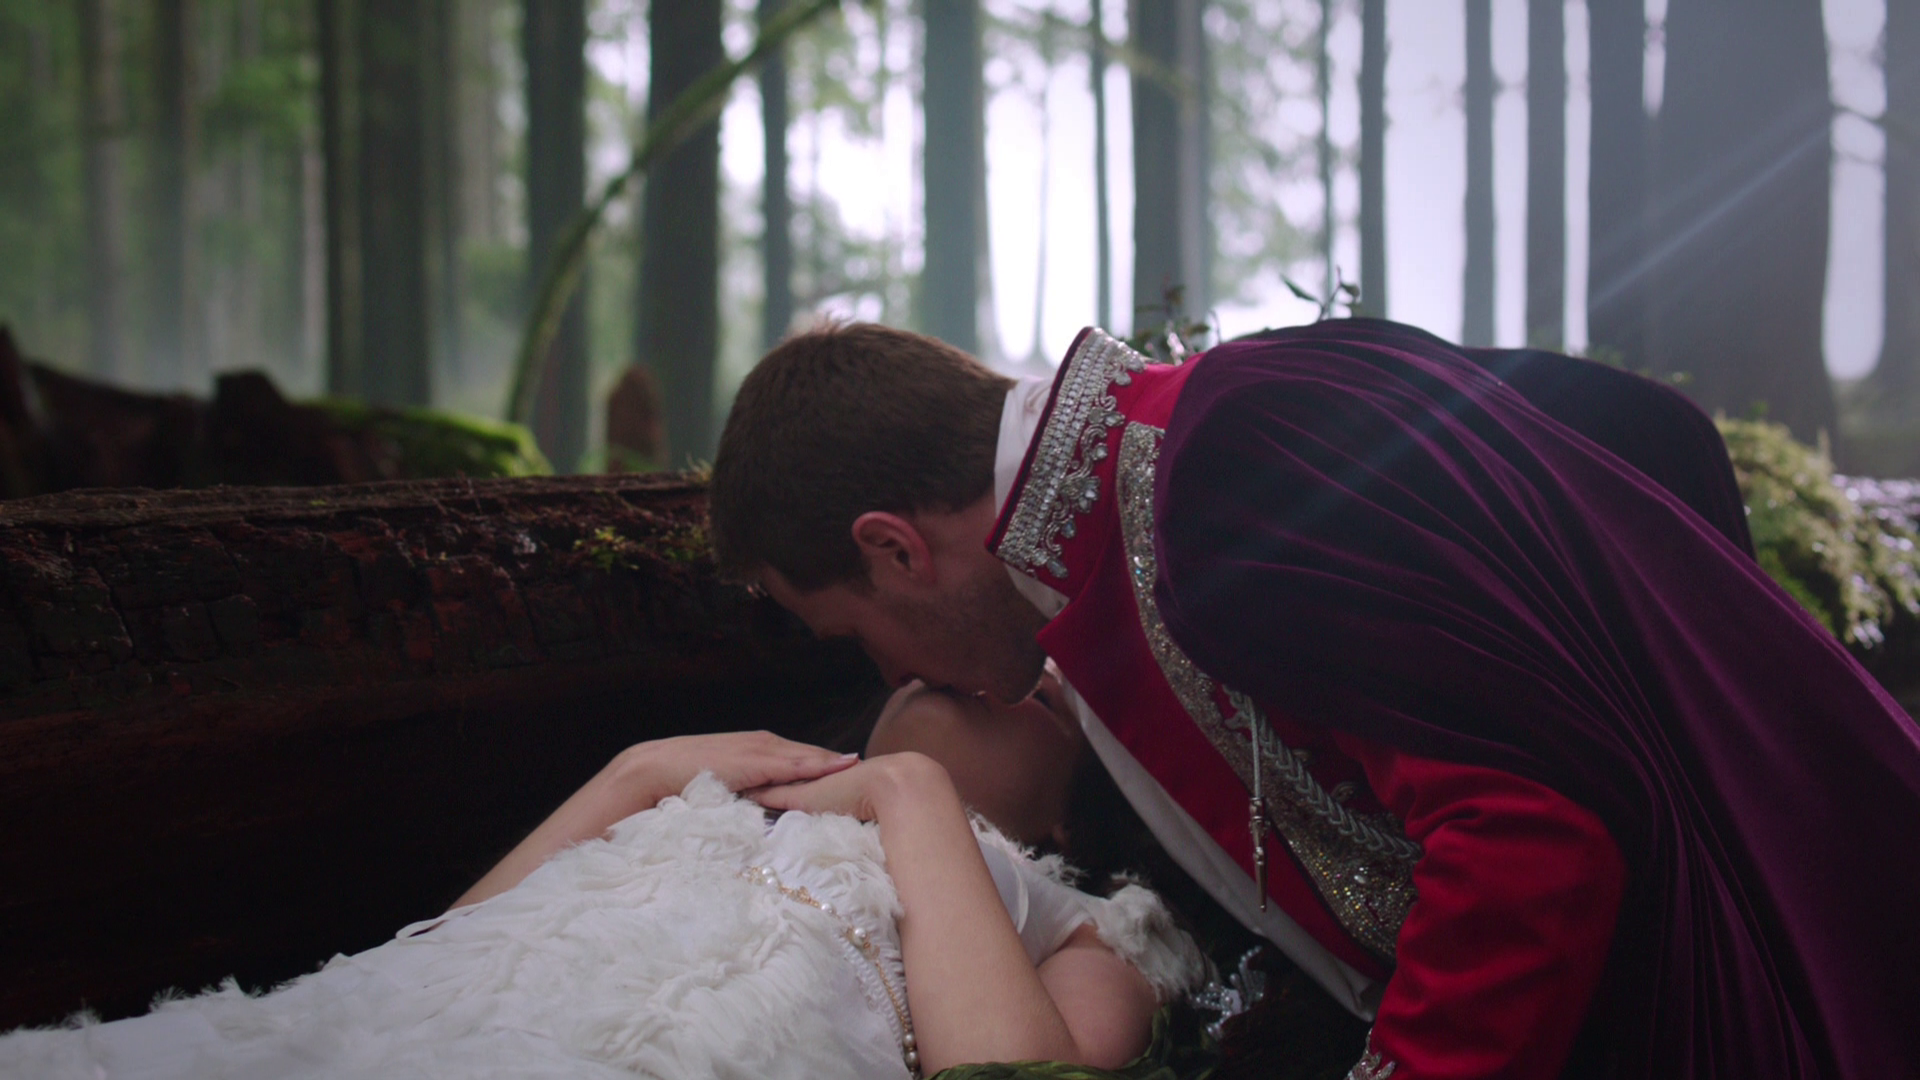 Prince Charming wakes Snow White with a kiss in the first minute of OUAT's pilot episode.